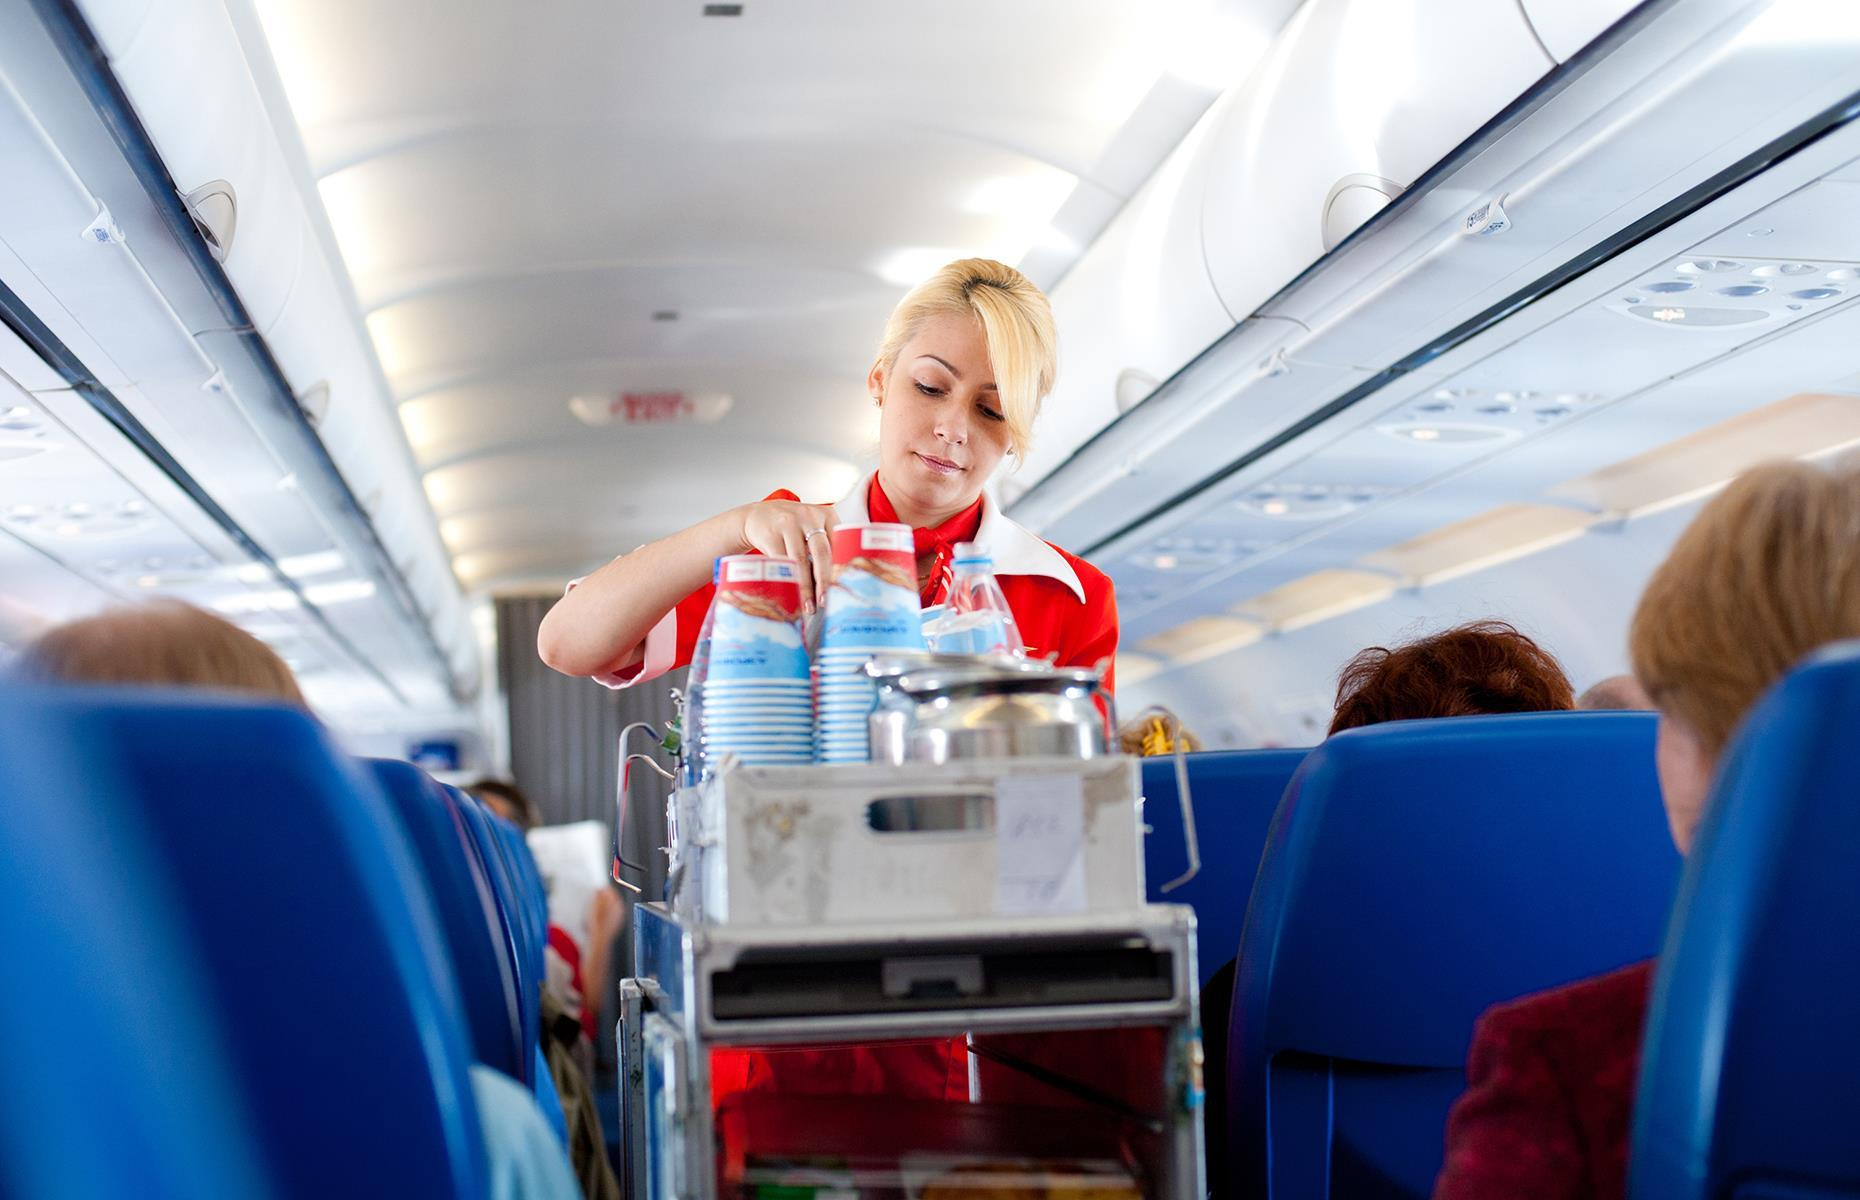 Slide 6 of 63: Before you board the plane, flight attendants will have carried out a safety check and ensured the plane is clean and tidy. They then welcome passengers on board and prepare and serve food and drinks. A lot of time is spent ensuring passengers are comfortable and at ease – and in rare cases, a flight attendant might have to carry out first aid or restrain a passenger.